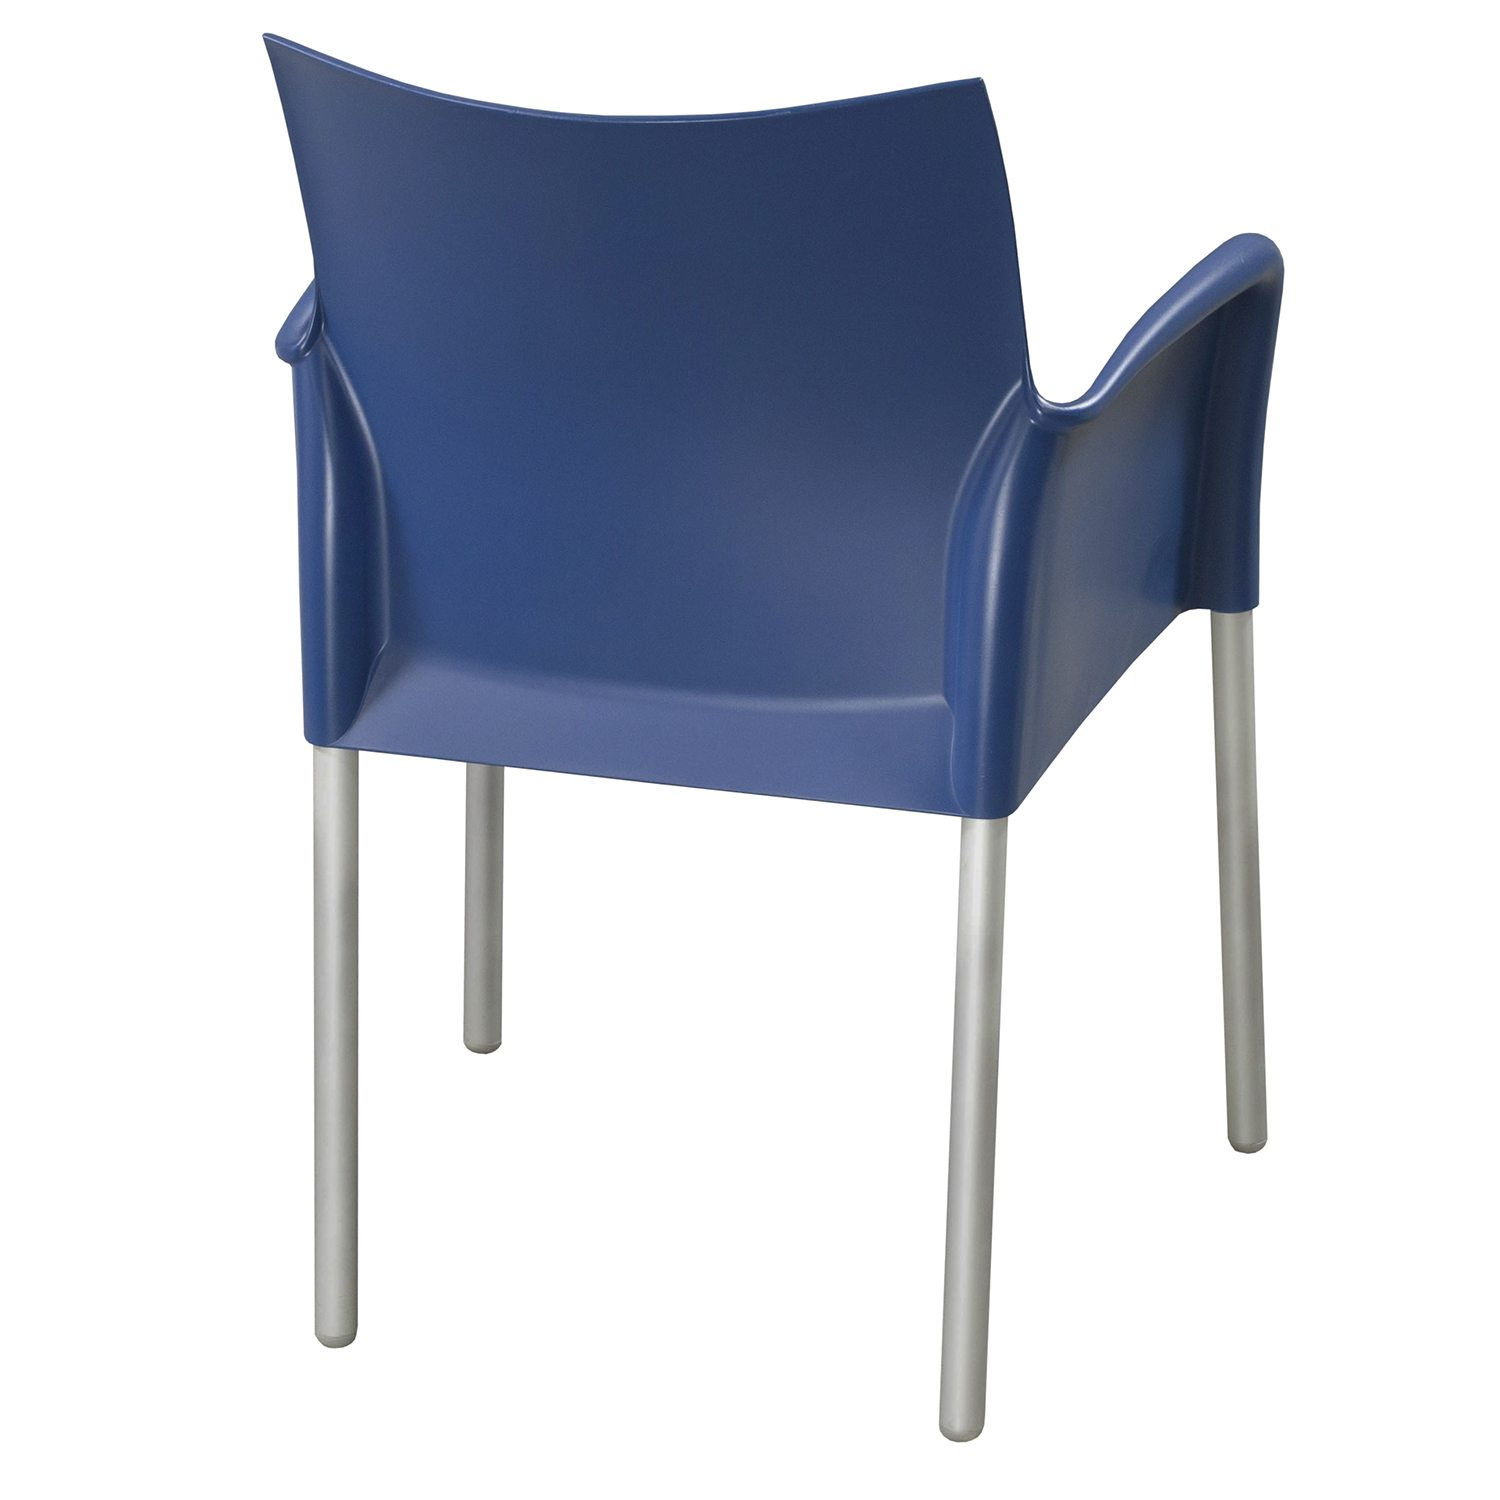 Break Room Chairs Pedarali Ice Used Break Room Chair W Arms Blue